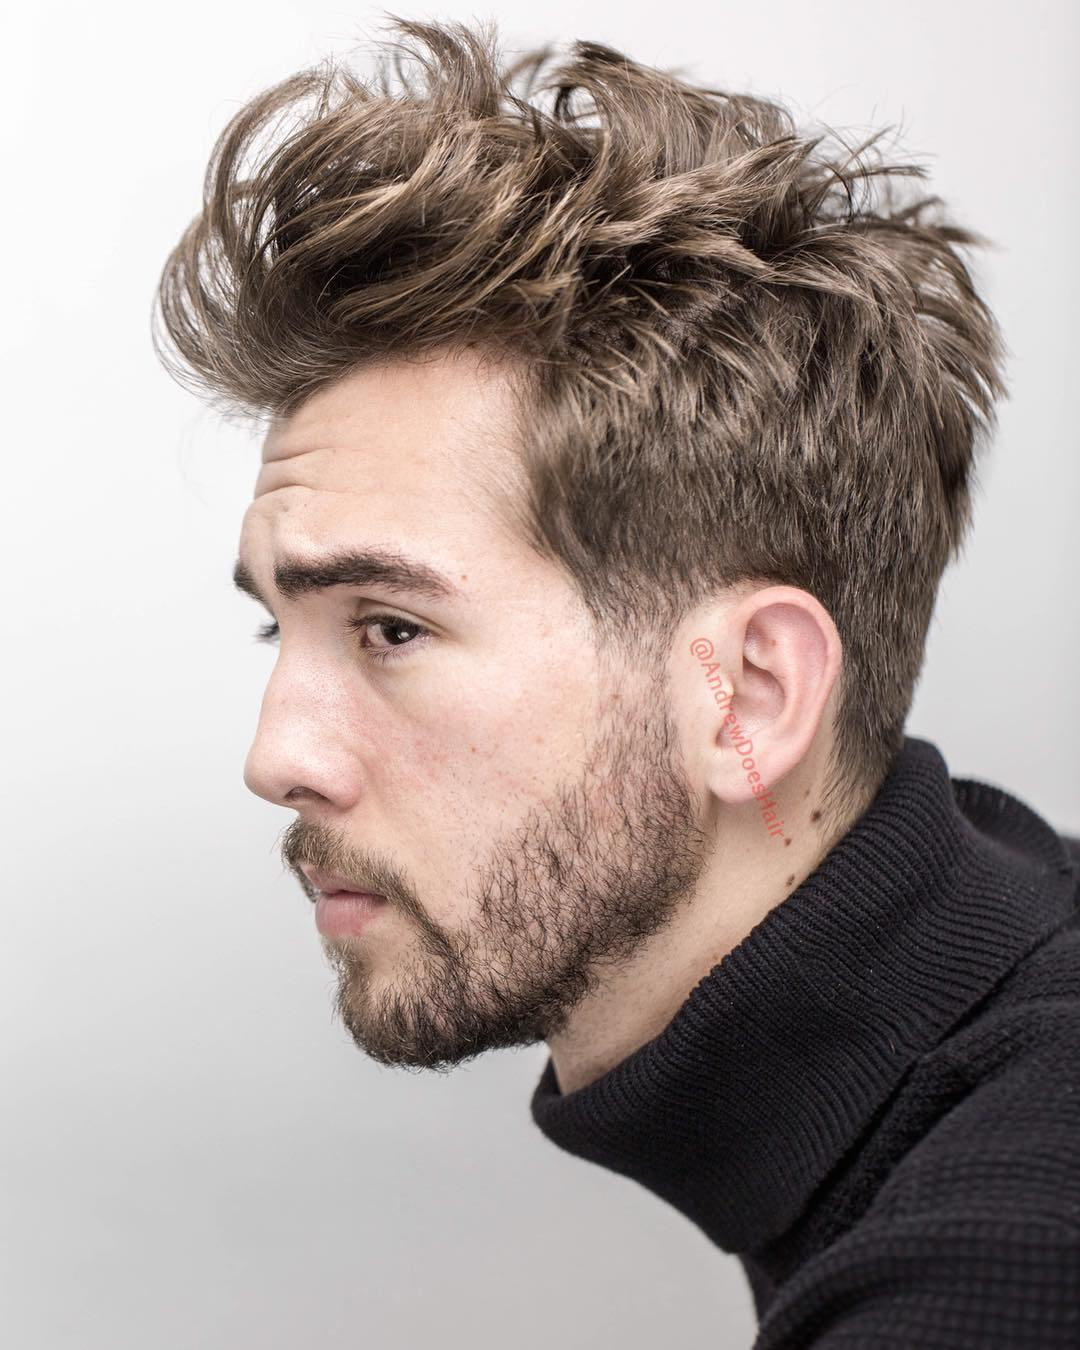 Peachy Medium Length Haircuts For Men 2020 Styles Natural Hairstyles Runnerswayorg